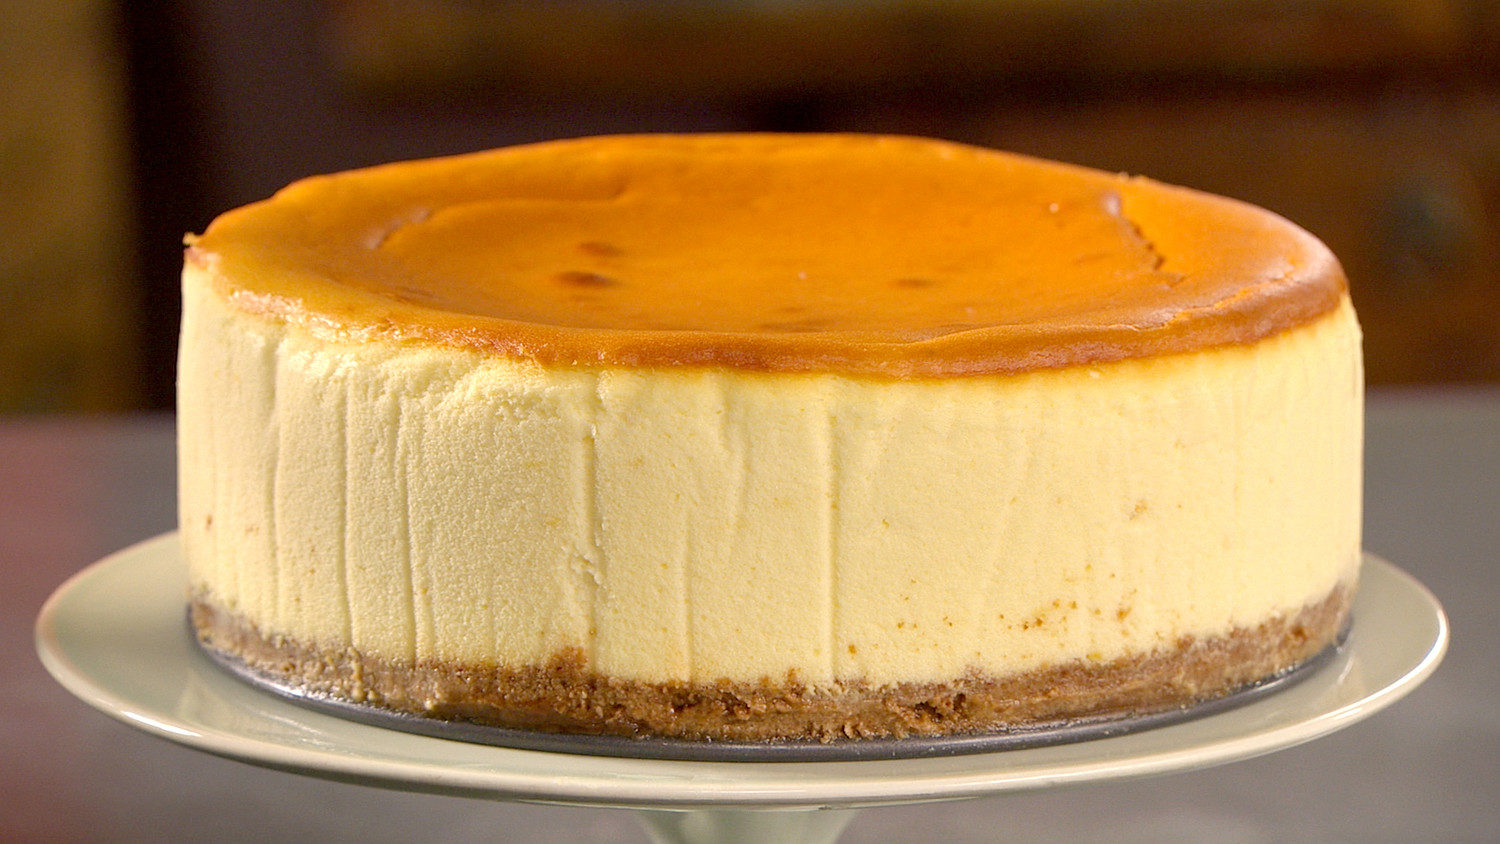 new-york-cheesecake-mhlb2030_horiz.jpg?itok=OVfIi-EA